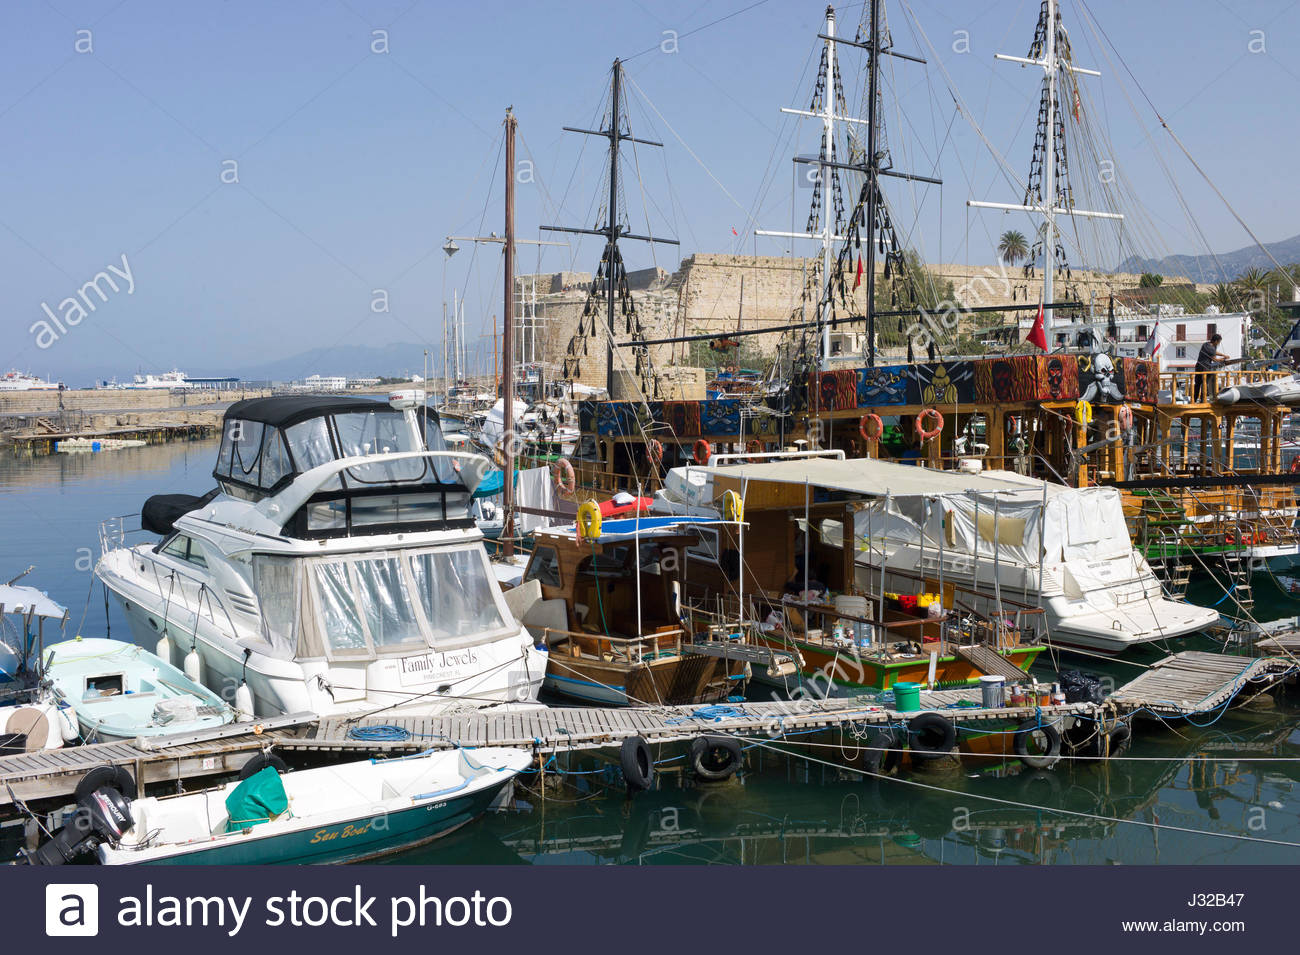 Yachts, tall ships and pleasure craft in the harbour at Kyrenia, northern Cyprus with the castle in the background Stock Photo